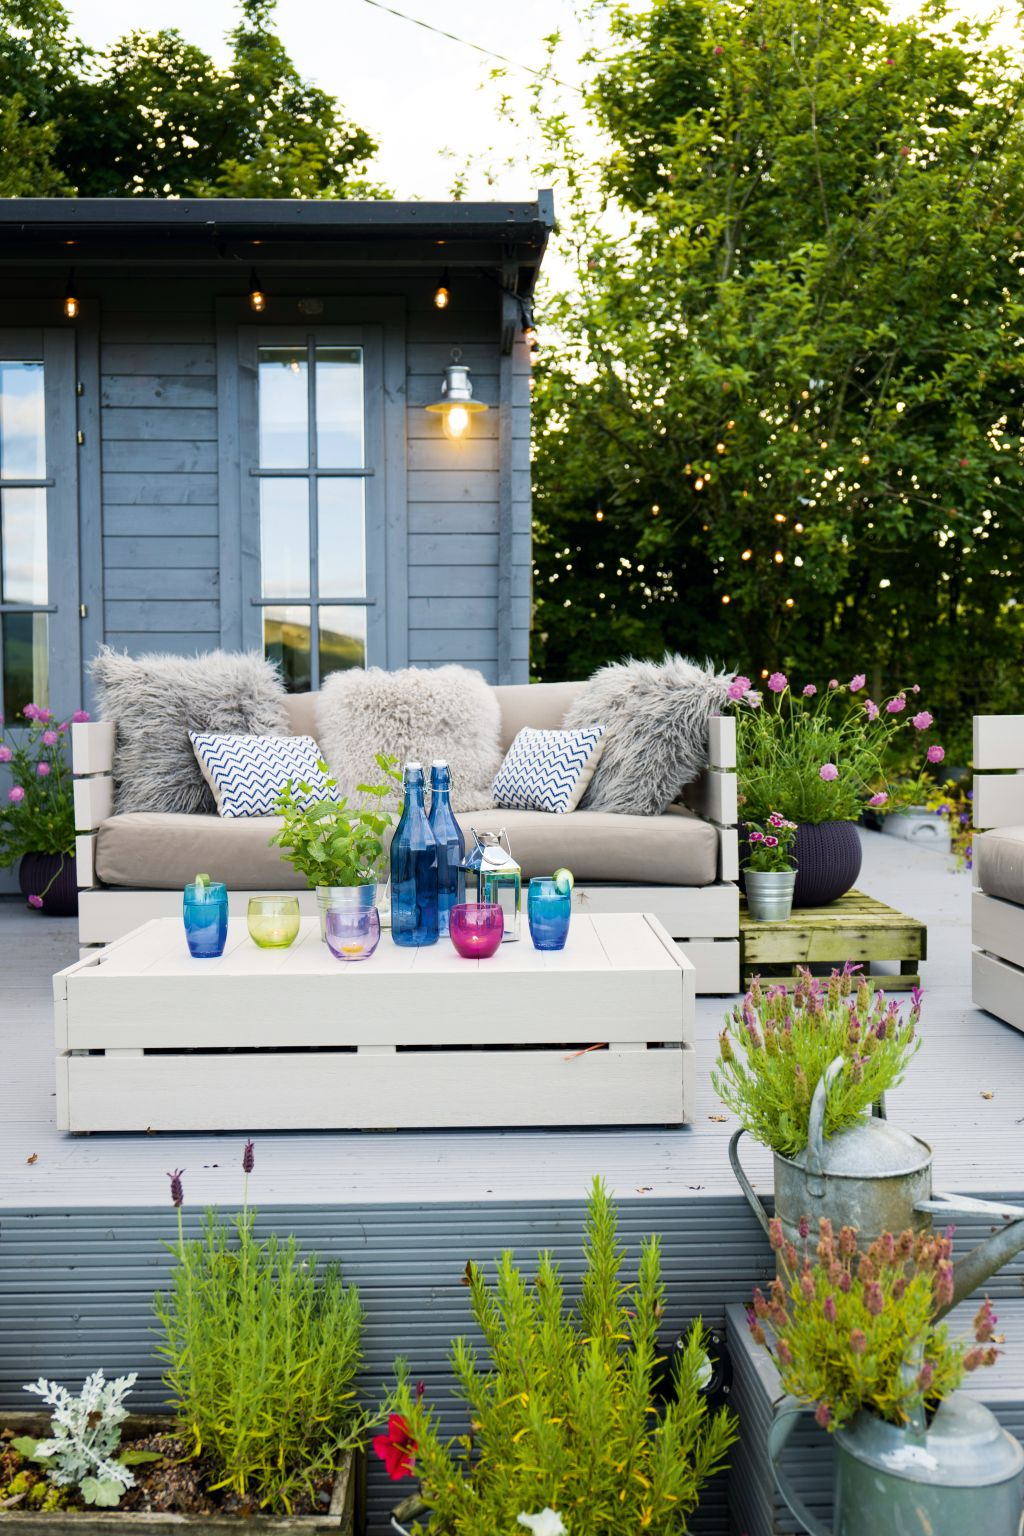 Budget garden ideas 20 brilliantly cheap ways to style your ...